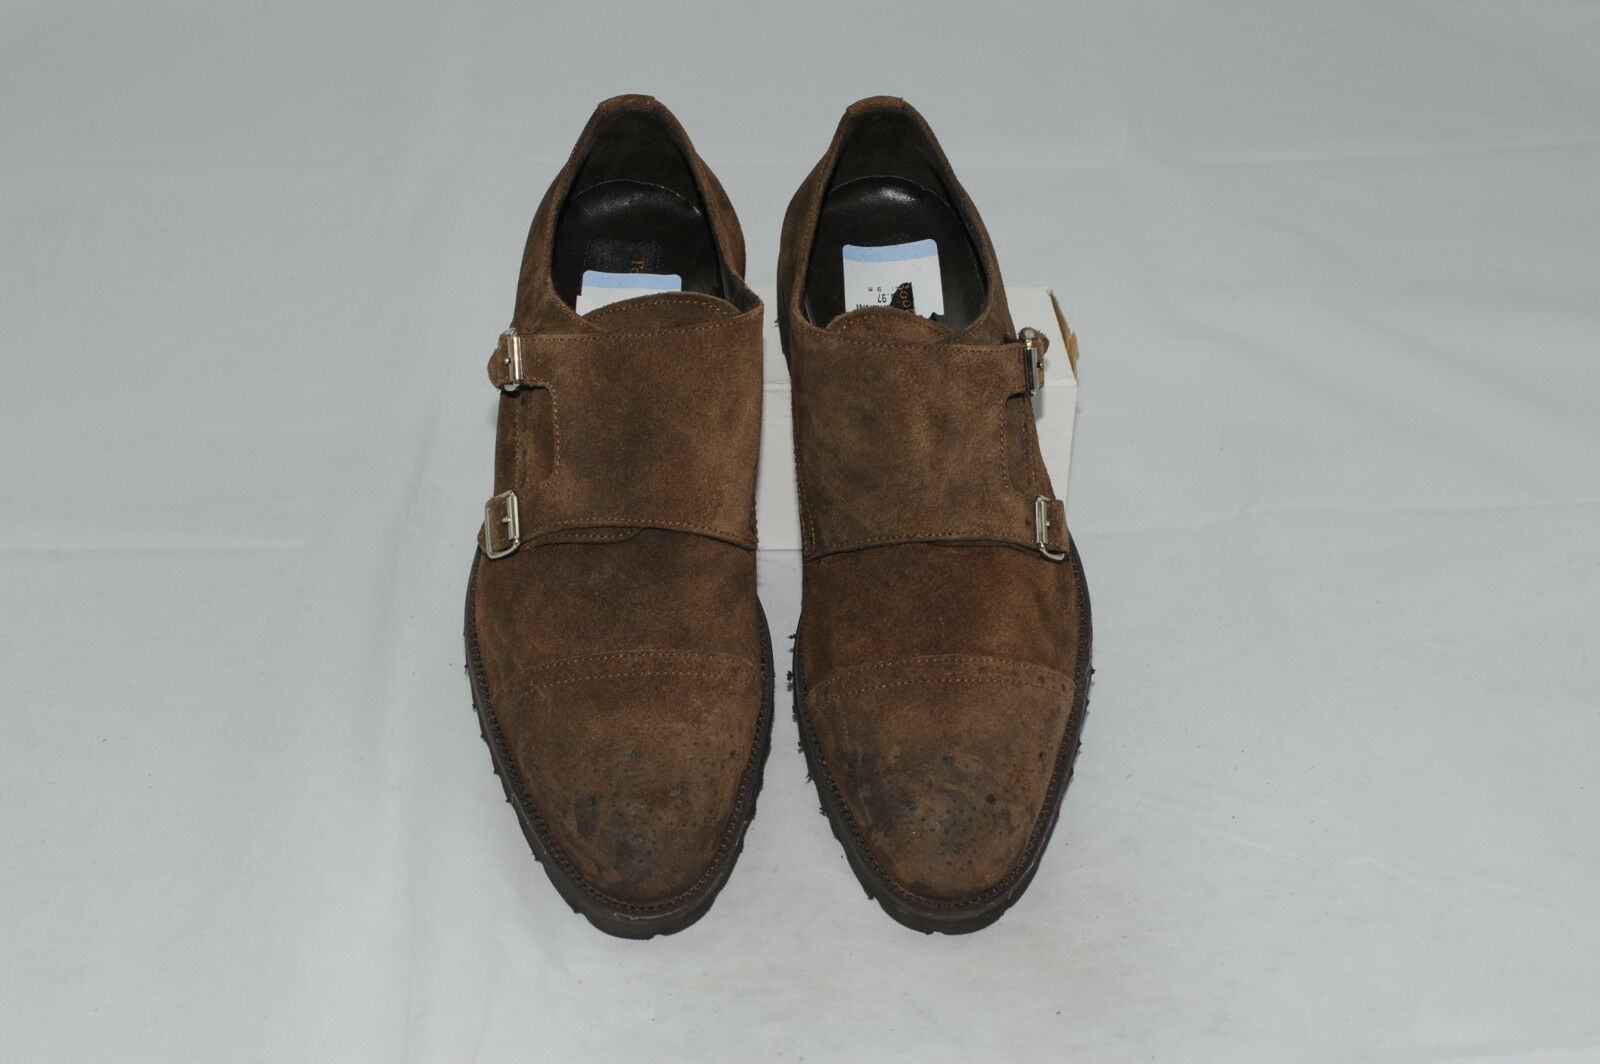 NWOT To Boot New York Double Monk Strap Dress shoes Size 9 M Made in